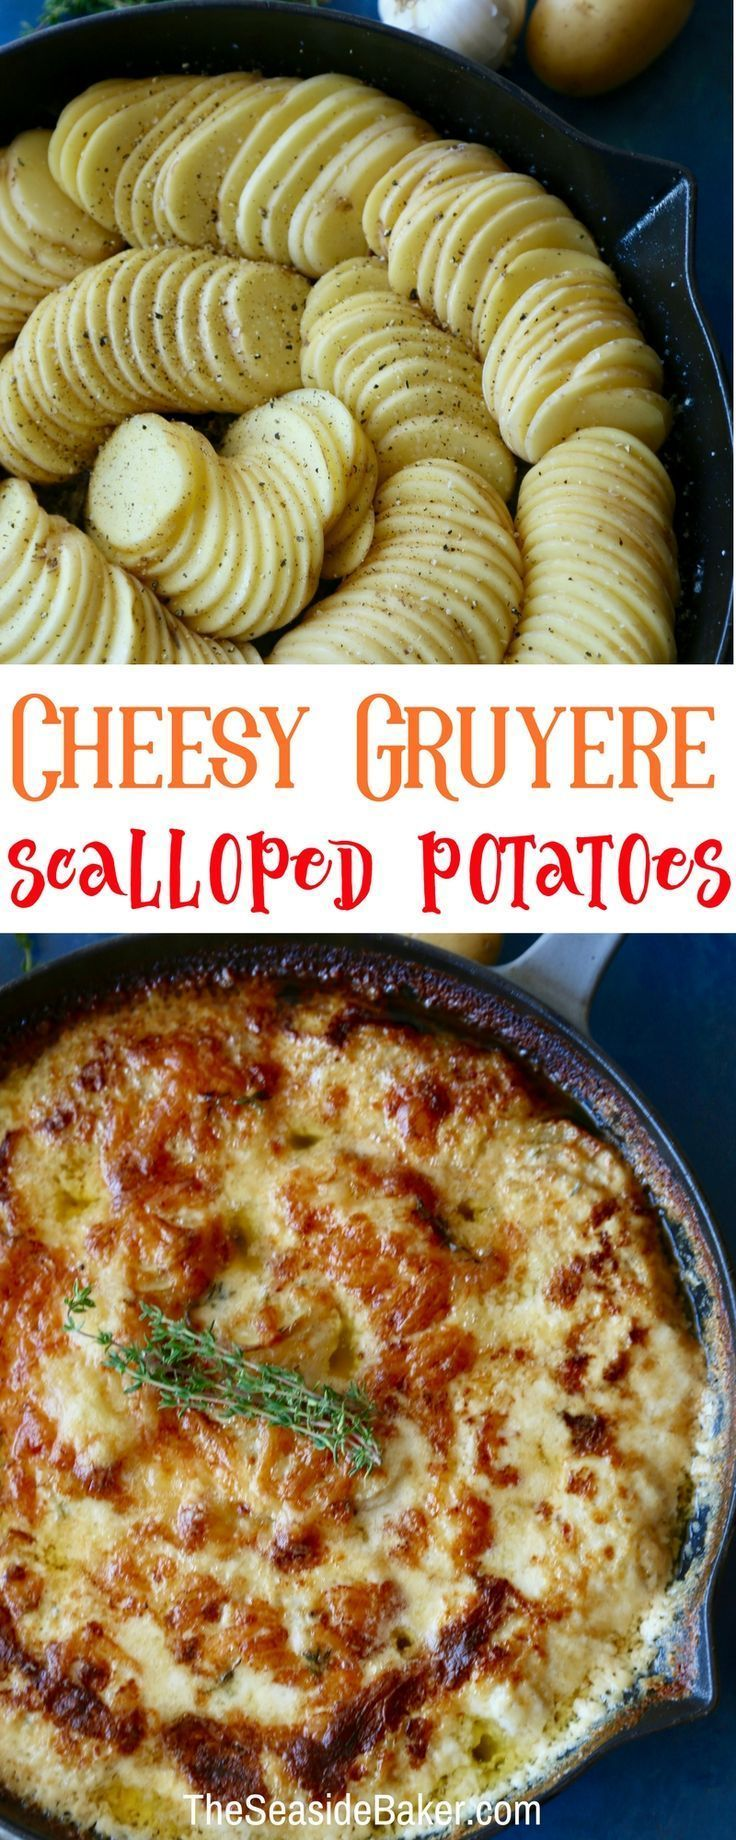 Gruyere Scalloped Potatoes- The Perfect Side Dish + Video - The Seaside Baker